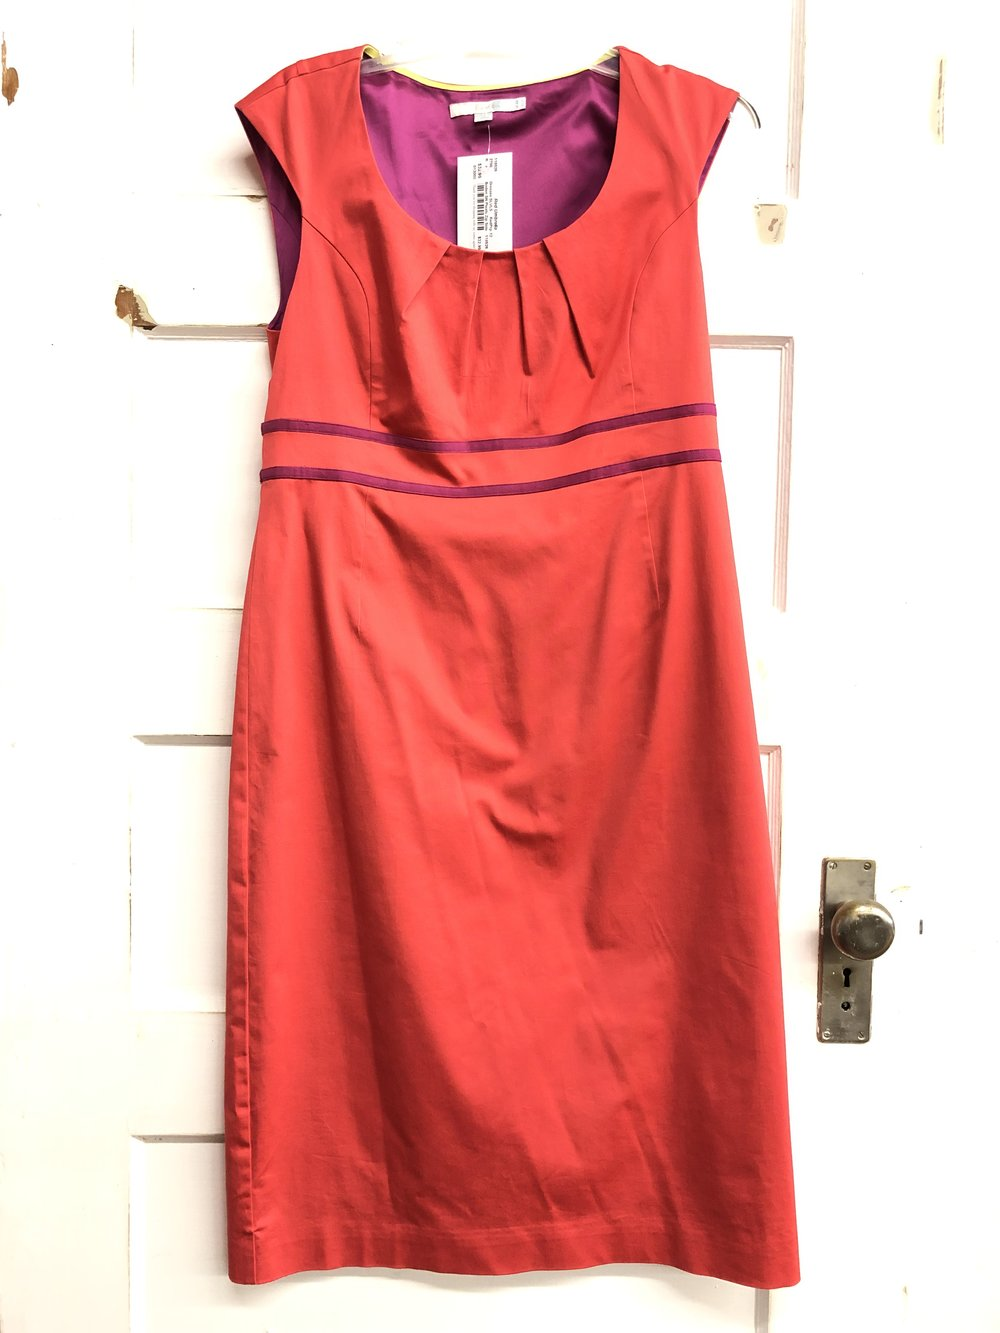 Boden Summer Fitted - Size 12 - $32.99